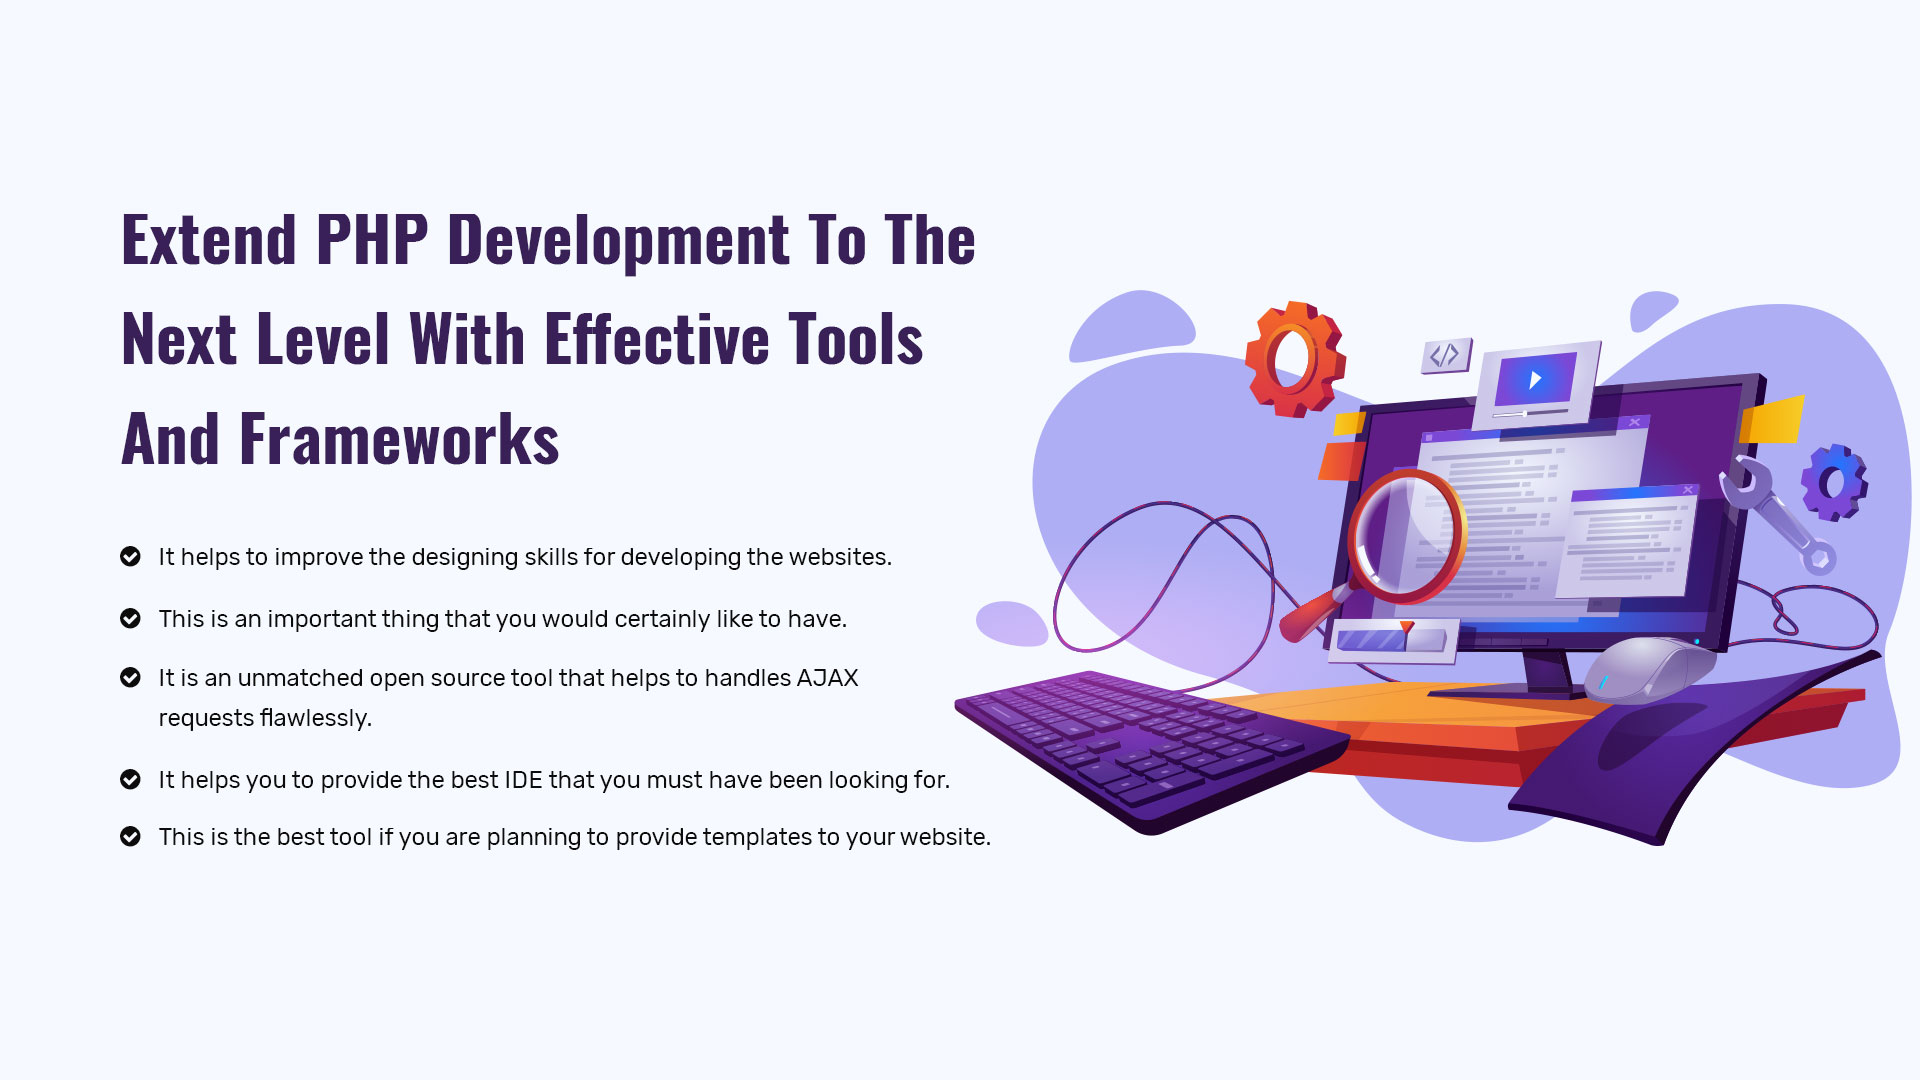 Extend PHP Development To Next Level With Effective Tool And Framework